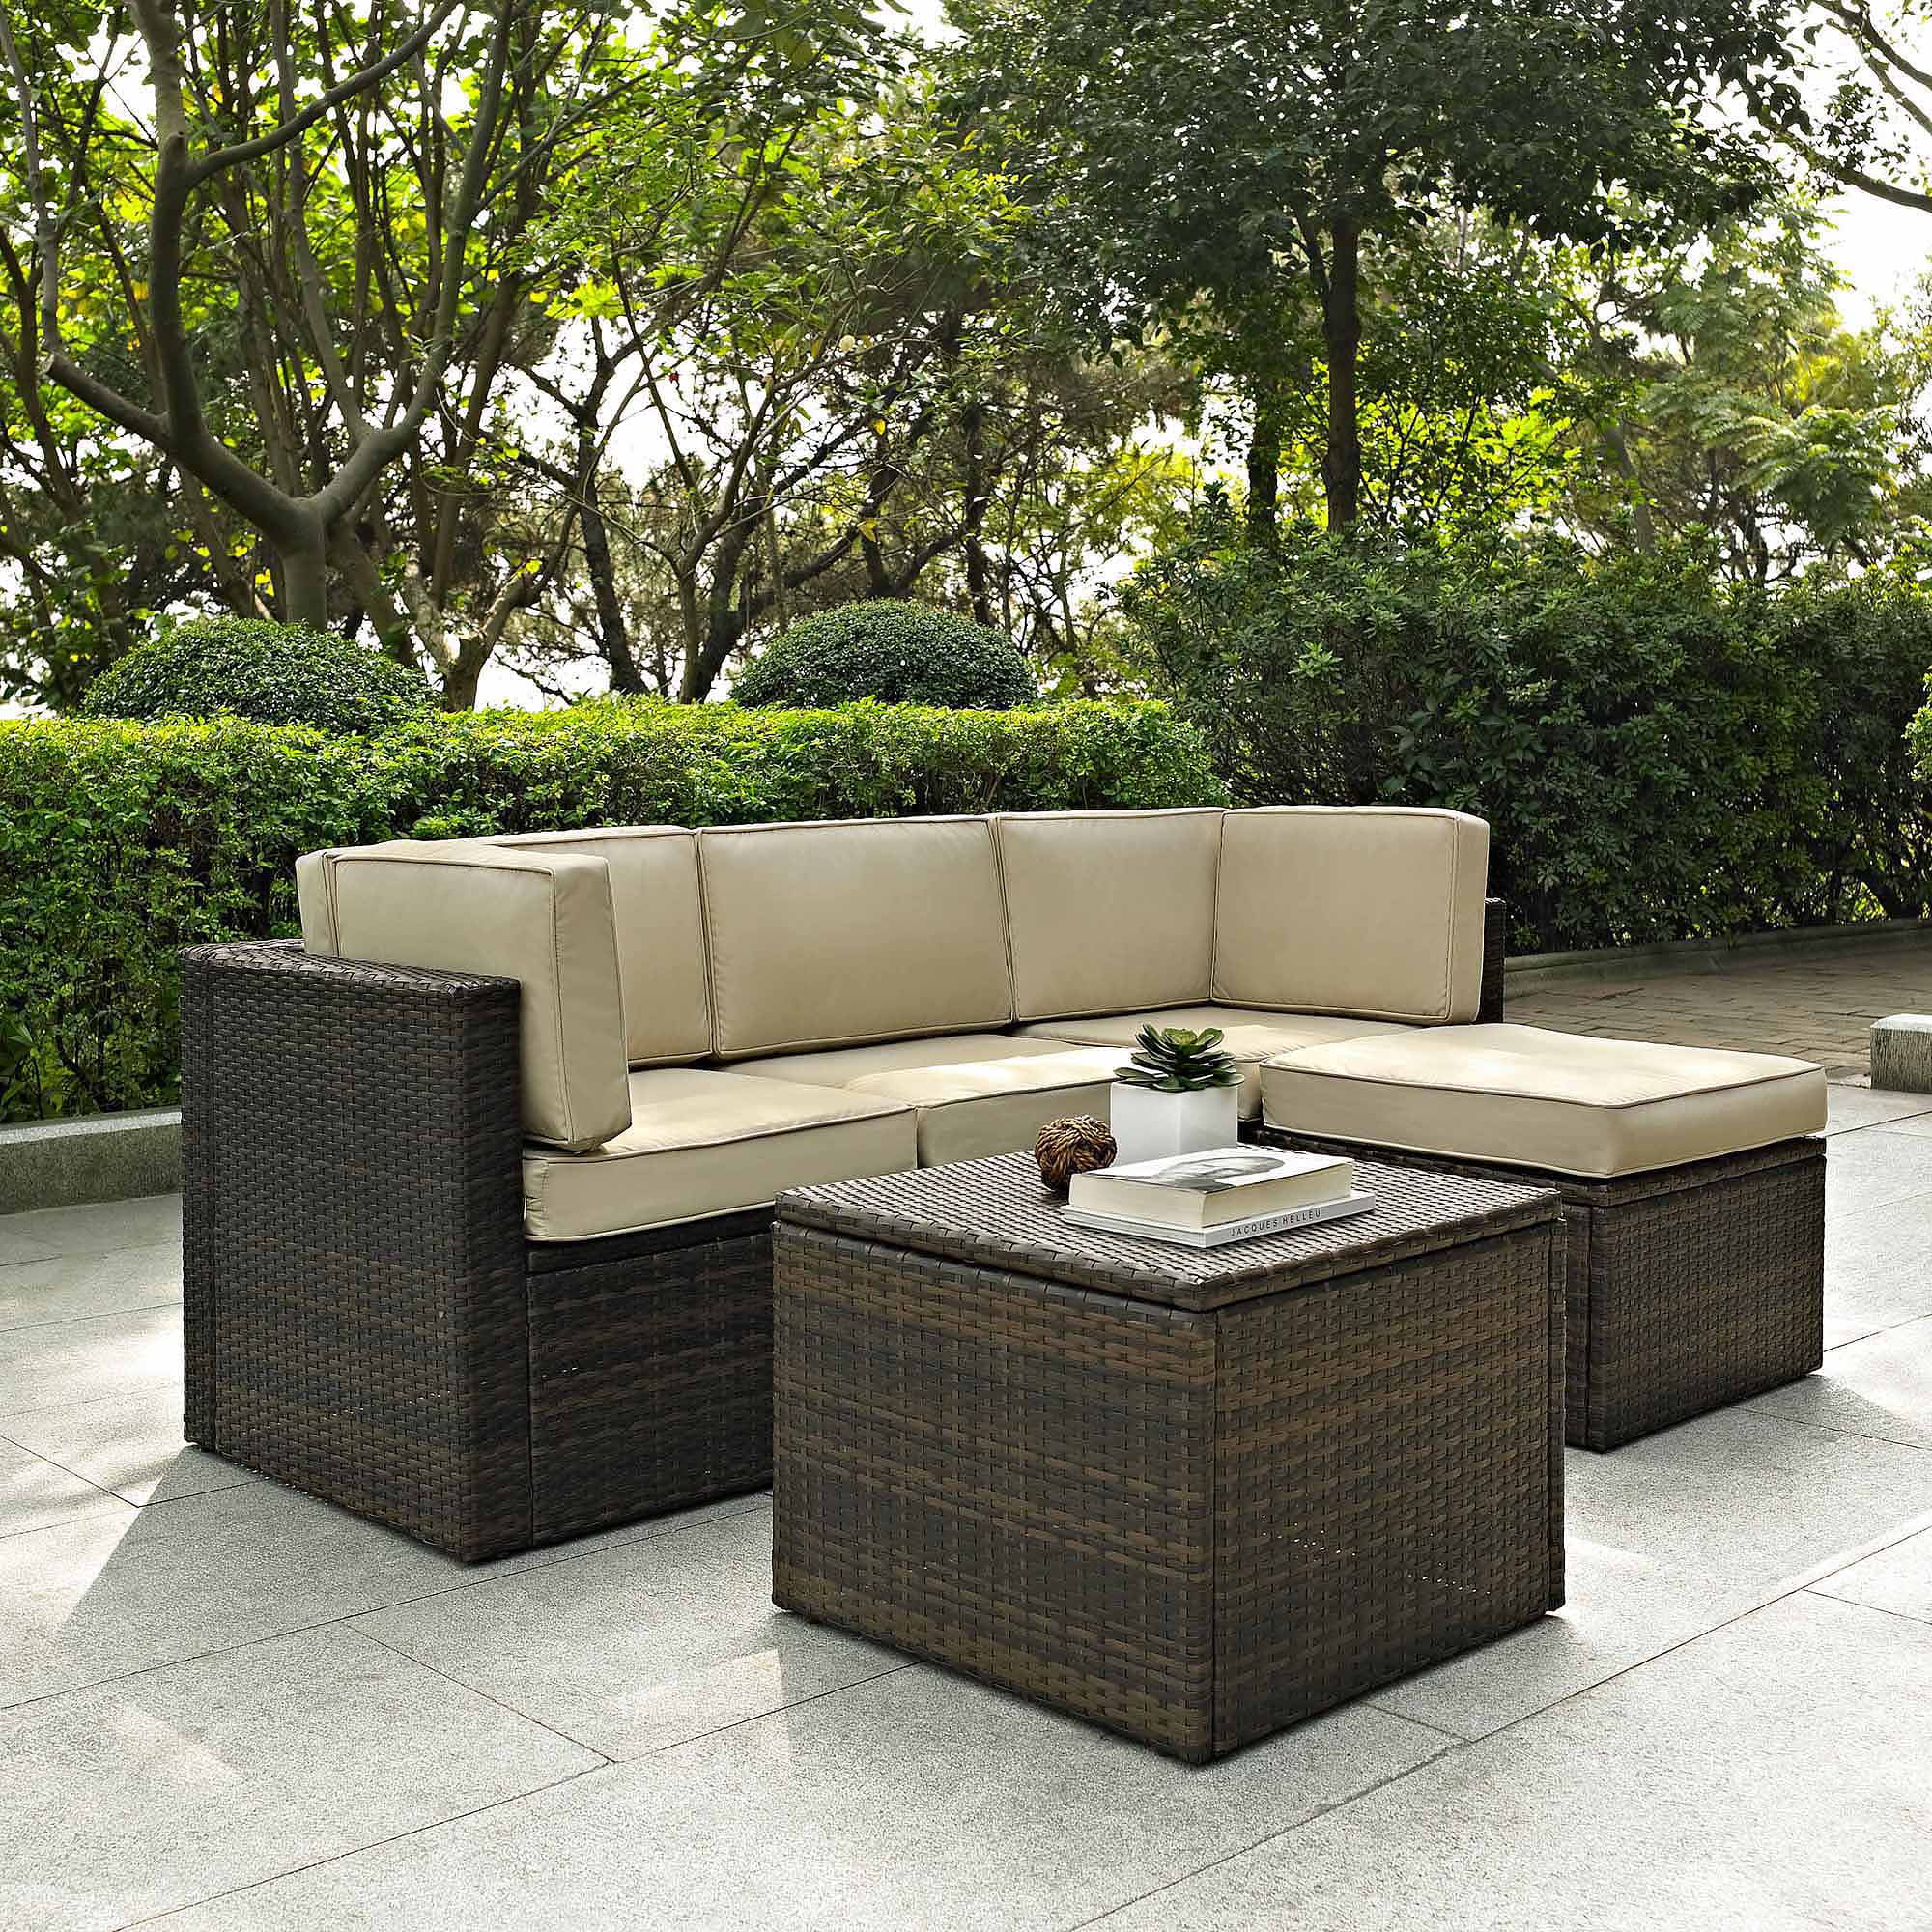 Crosley Furniture Palm Harbor 5 Piece Outdoor Wicker Seating Set    Walmart.com